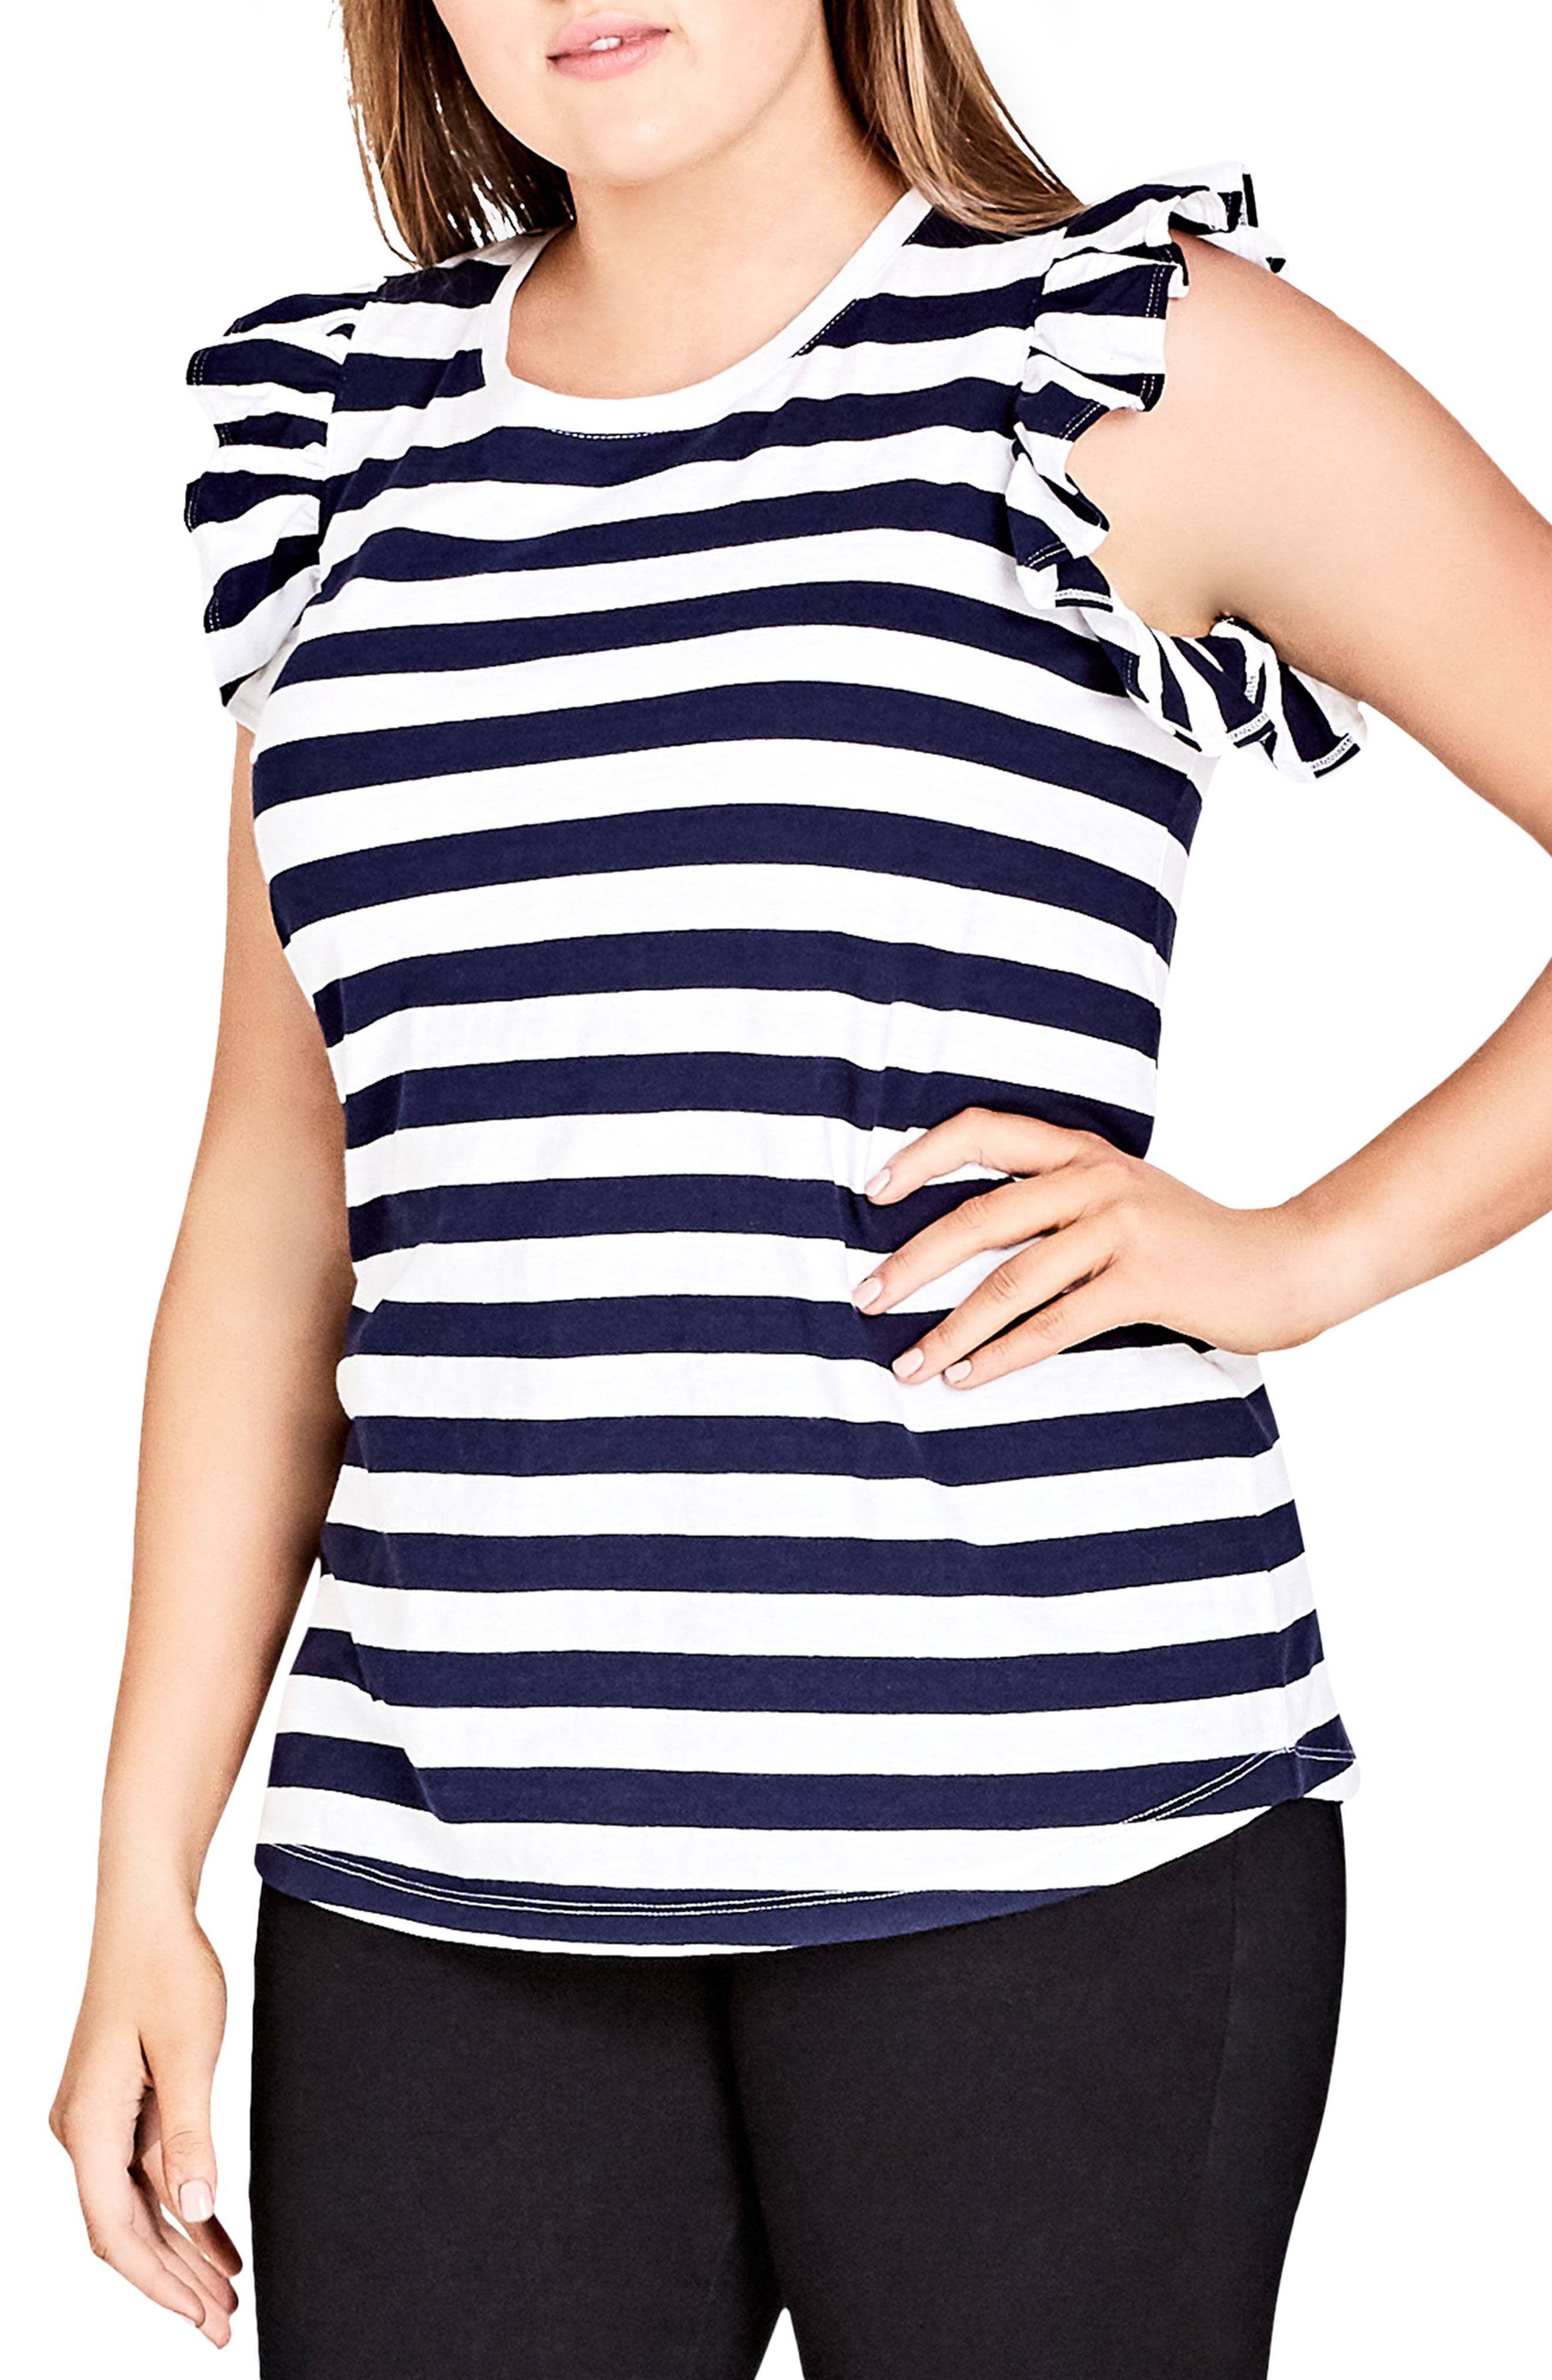 CITY CHIC,                             Stripe Frill Sleeve Knit Top,                             Main thumbnail 1, color,                             108